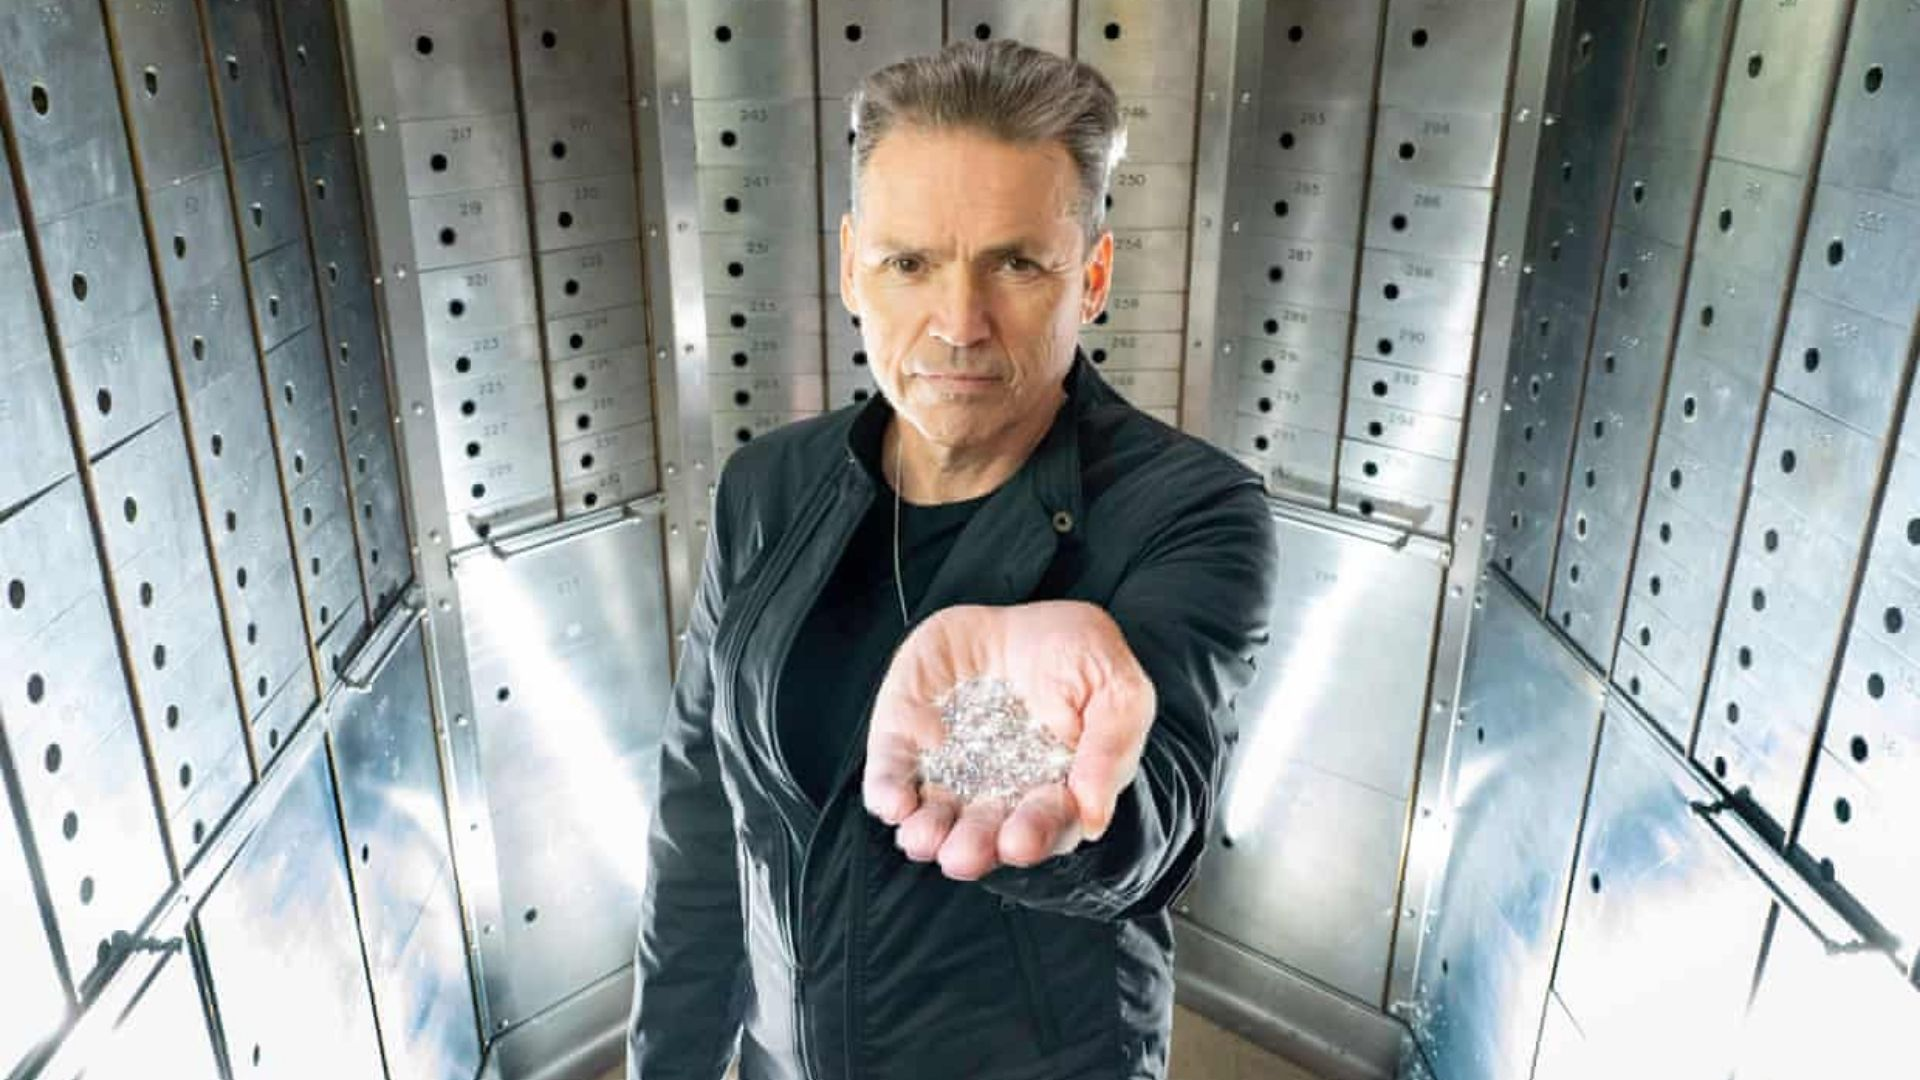 Dale Vince holding a handful of 'sky diamonds' created using a 'sky mining facility' to extract carbon from the atmosphere, with wind and sun providing the energy, as well as using rain water.